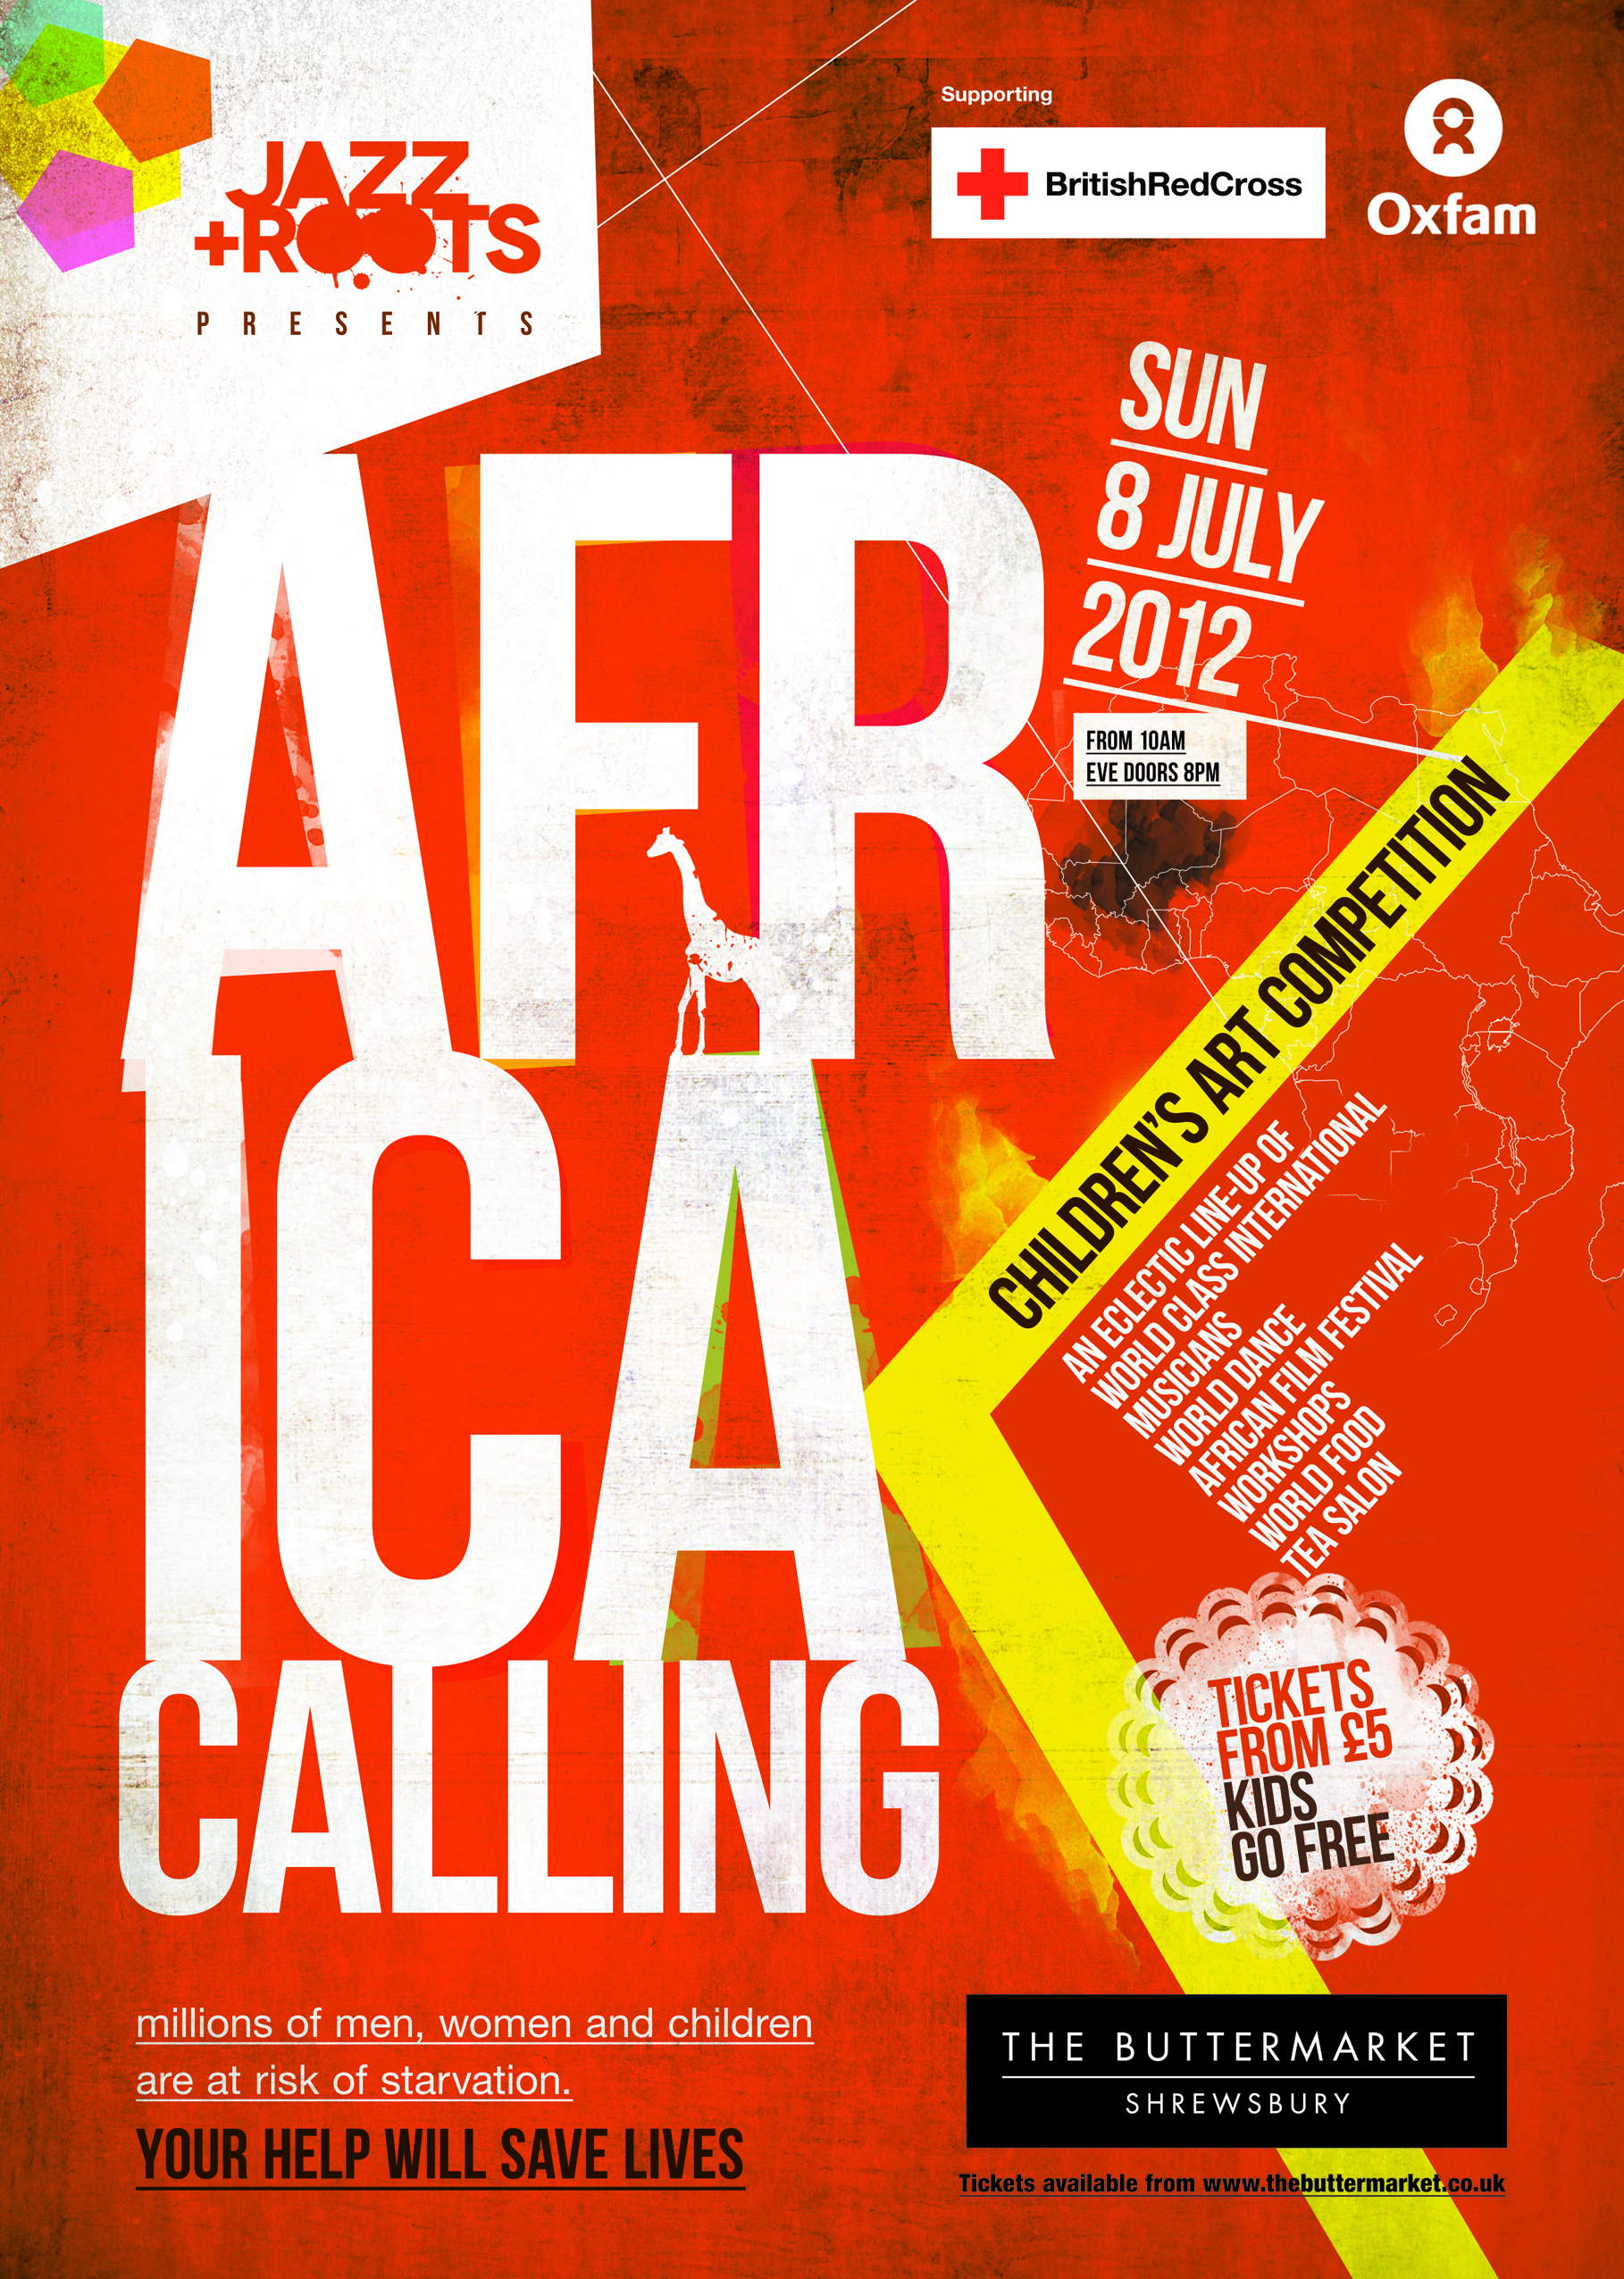 Announcing Africa Callings Childrens Art Competition